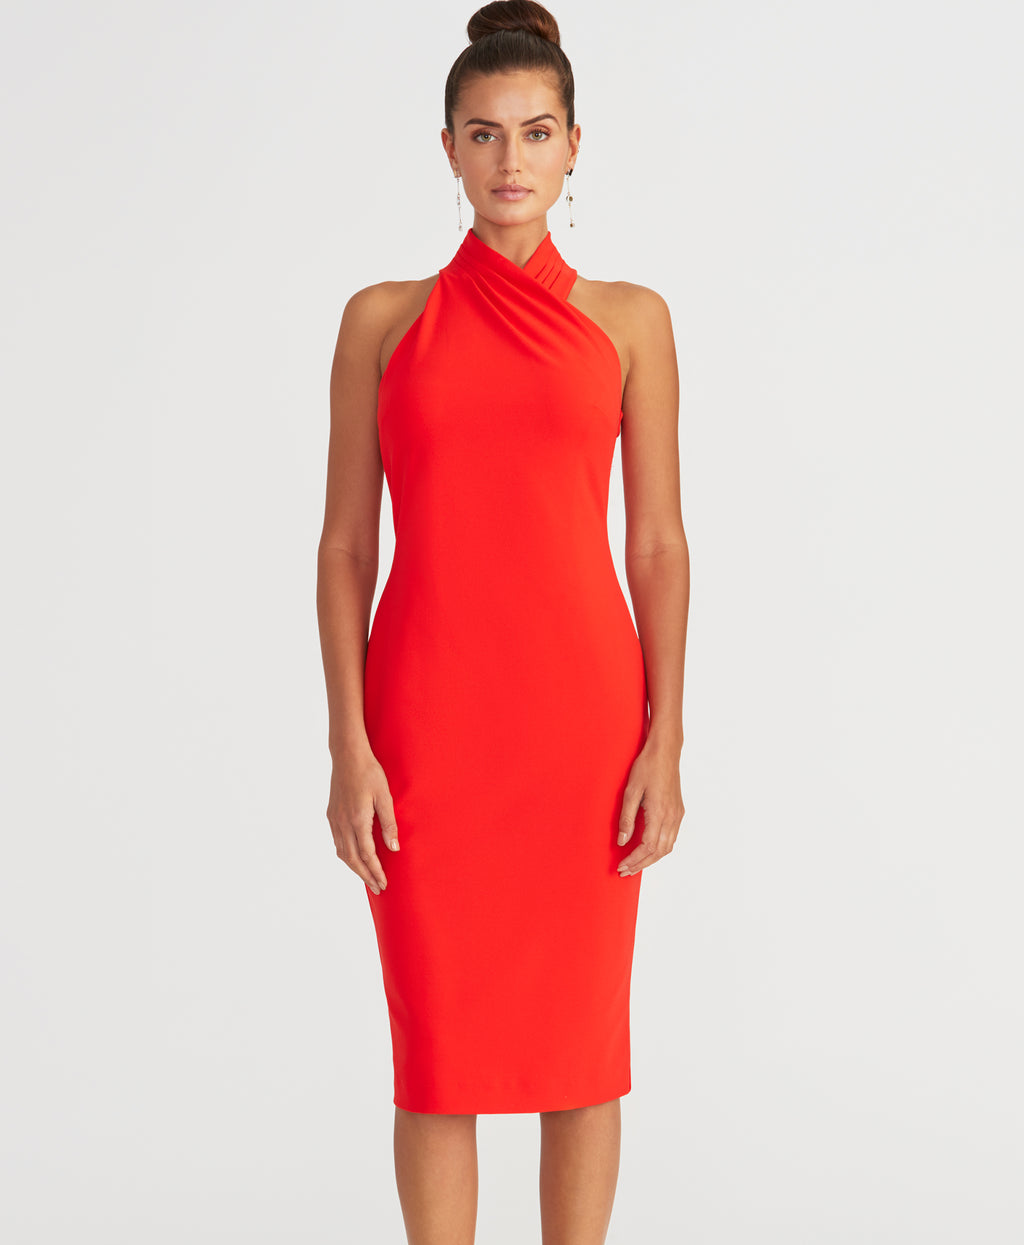 HARLAND DRESS | RIO RED